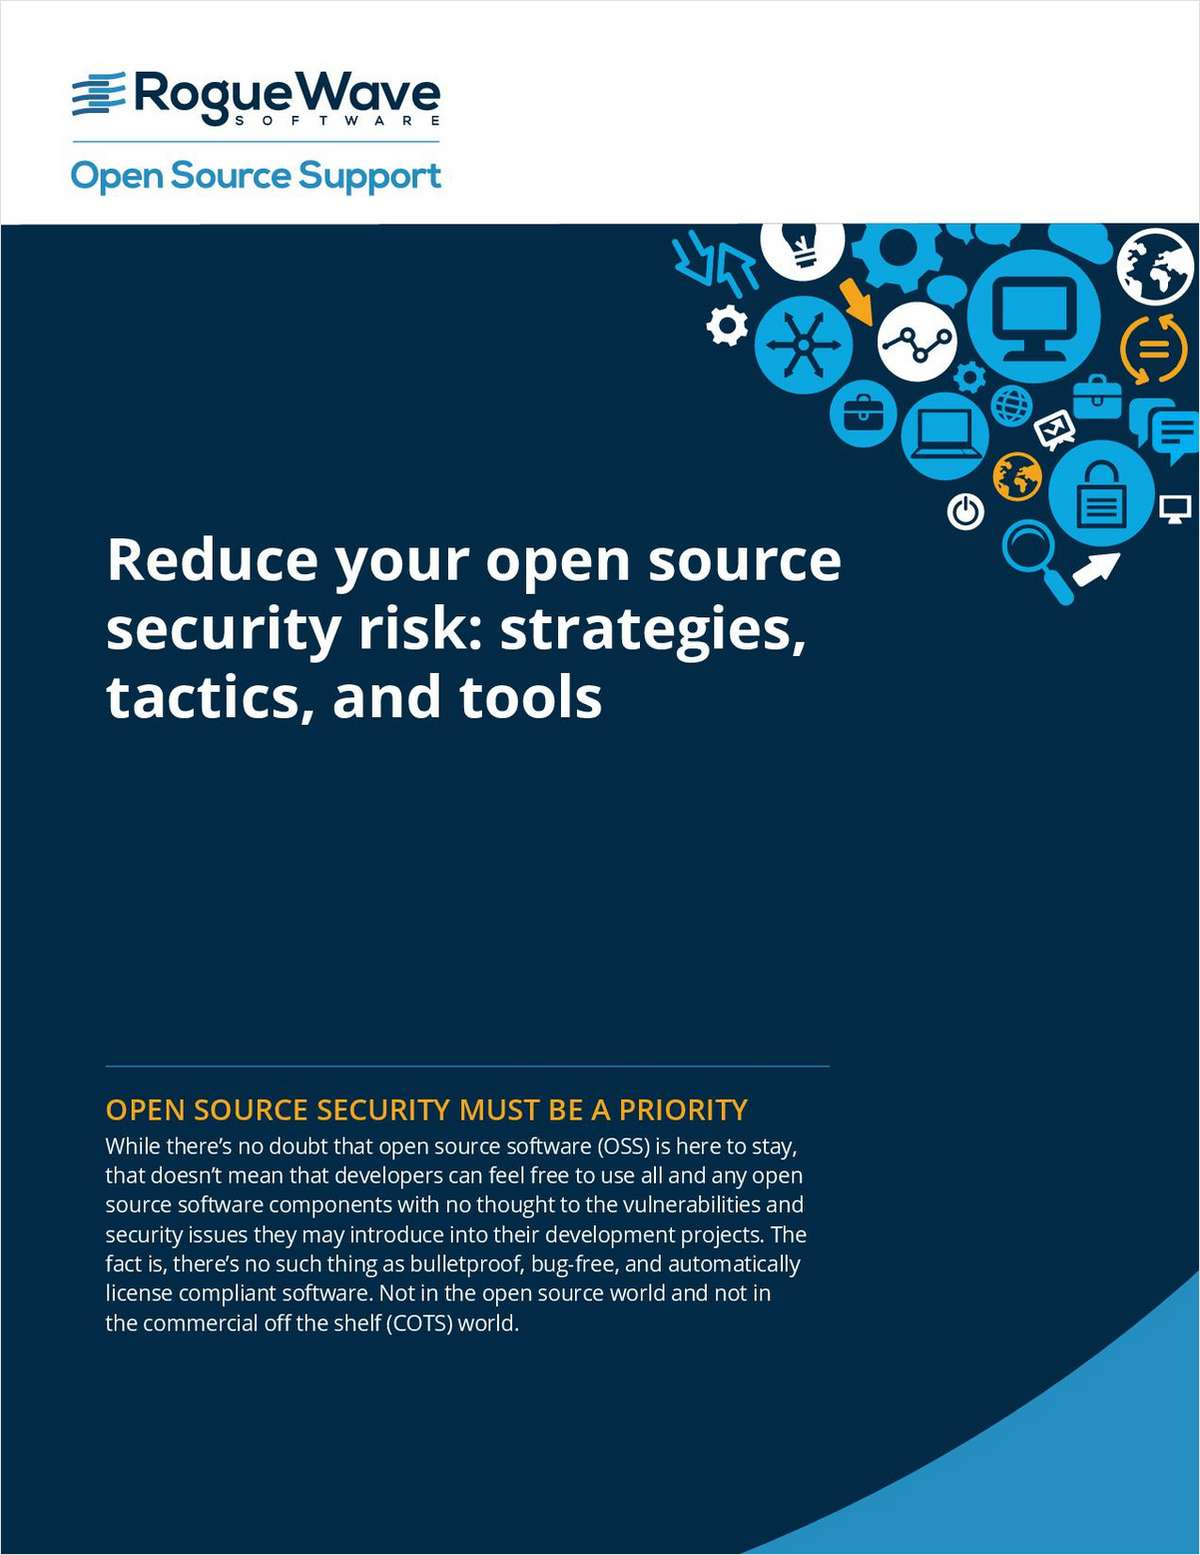 Reduce Your Open Source Security Risk: Strategies, Tactics, and Tools